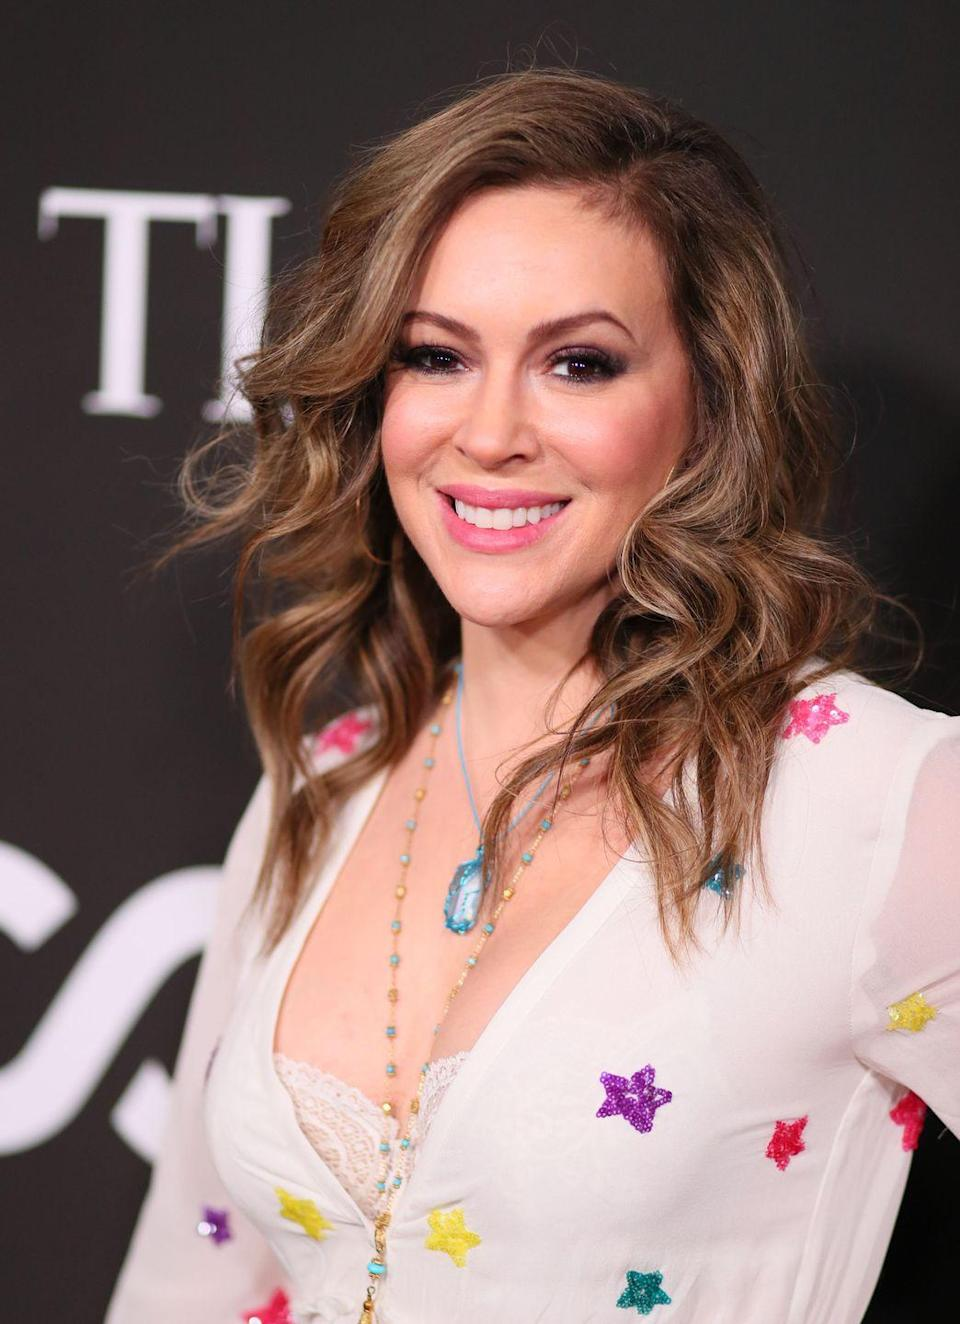 <p>Milano continued to act in notable roles on <em>Melrose Place, Charmed, </em>and <em>My Name is Earl. </em>Although she is not acting as much today, she has branched out into other endeavors. A huge Los Angeles Dodgers fan, Milano launched a clothing line in 2007 of team apparel for female baseball fans. She's been a vocal activist for various causes, most notably regarded in her role starting the #MeToo conversation.<br></p>